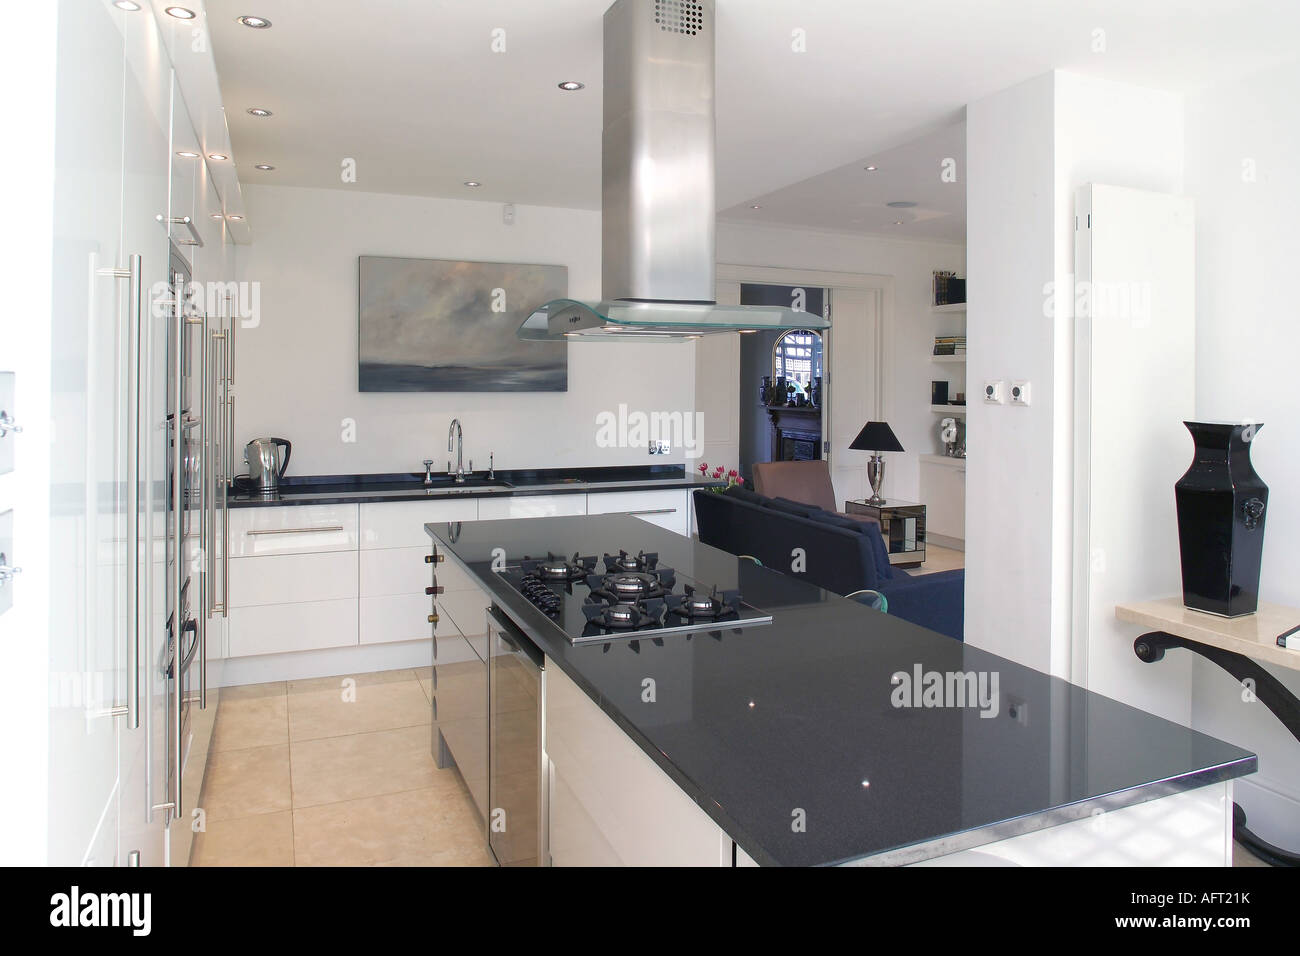 Modern Kitchen Fans Extractor Fan Above Hob In Black Granite Island Unit In